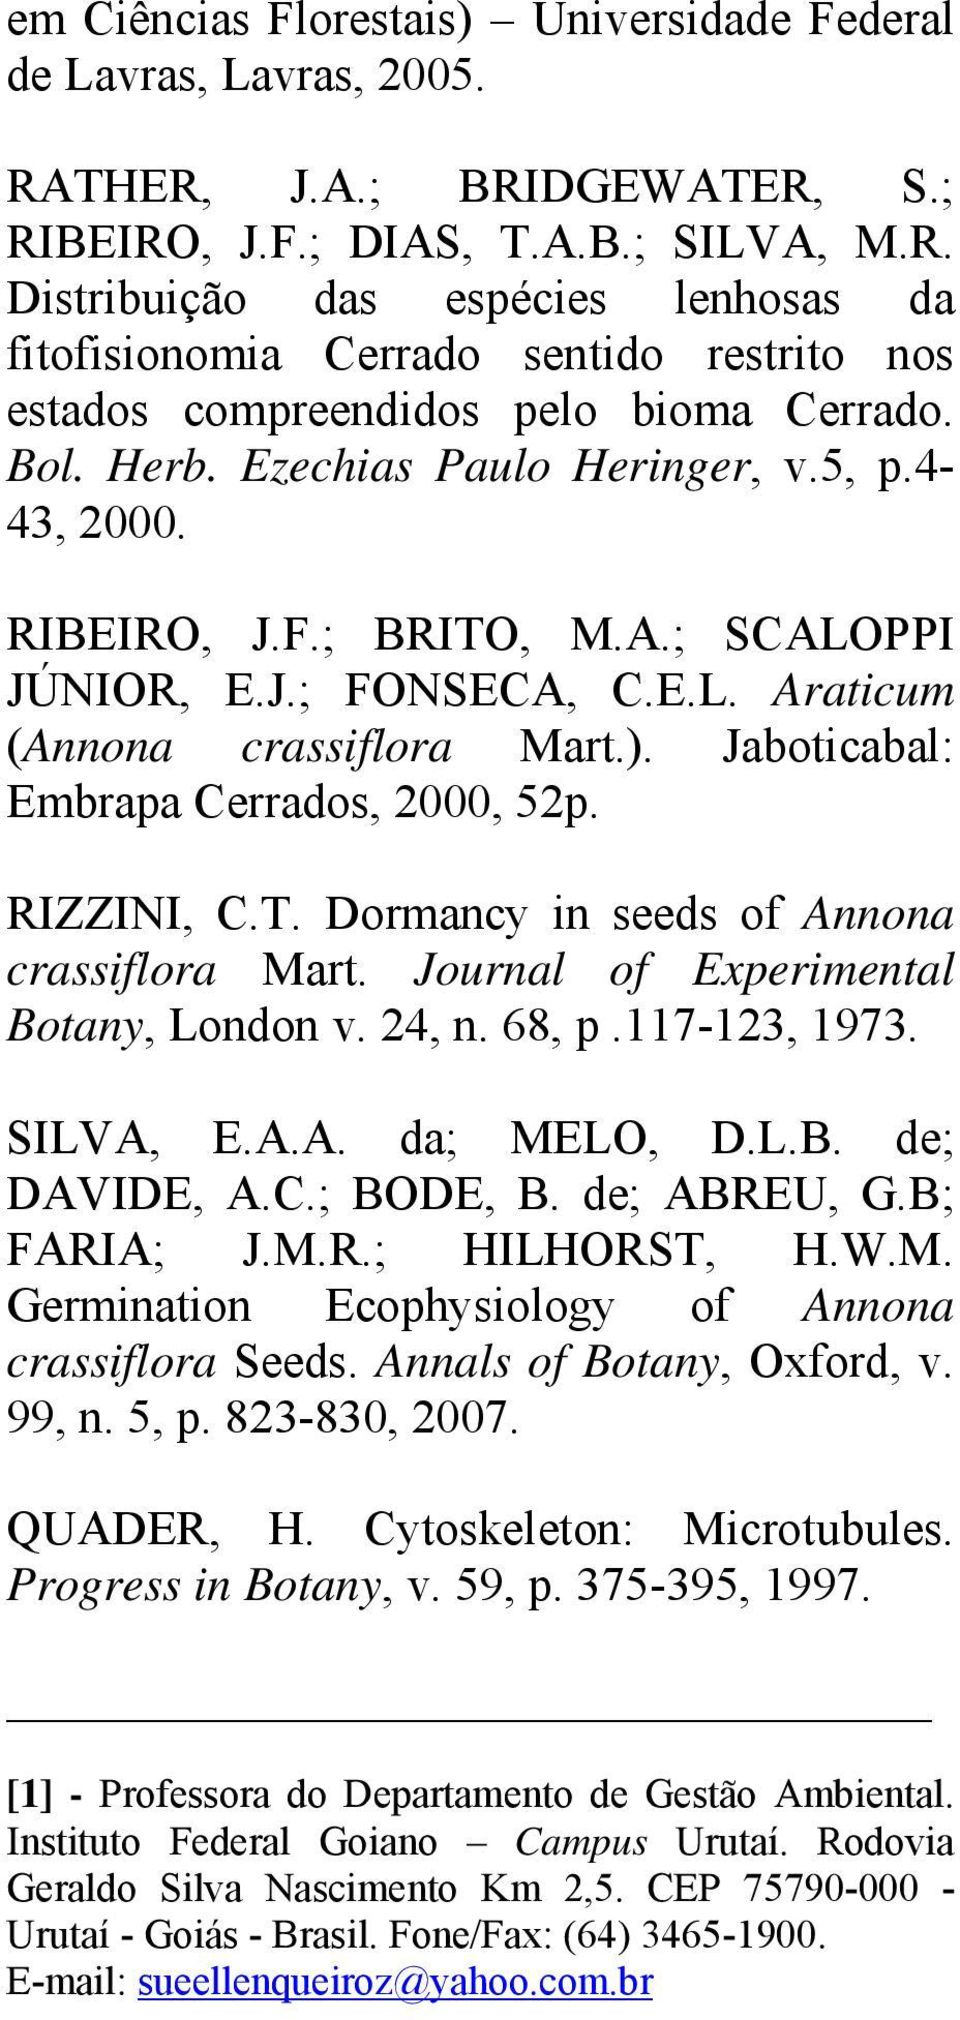 RIZZINI, C.T. Dormancy in seeds of Annona crassiflora Mart. Journal of Experimental Botany, London v. 24, n. 68, p.117-123, 1973. SILVA, E.A.A. da; MELO, D.L.B. de; DAVIDE, A.C.; BODE, B.